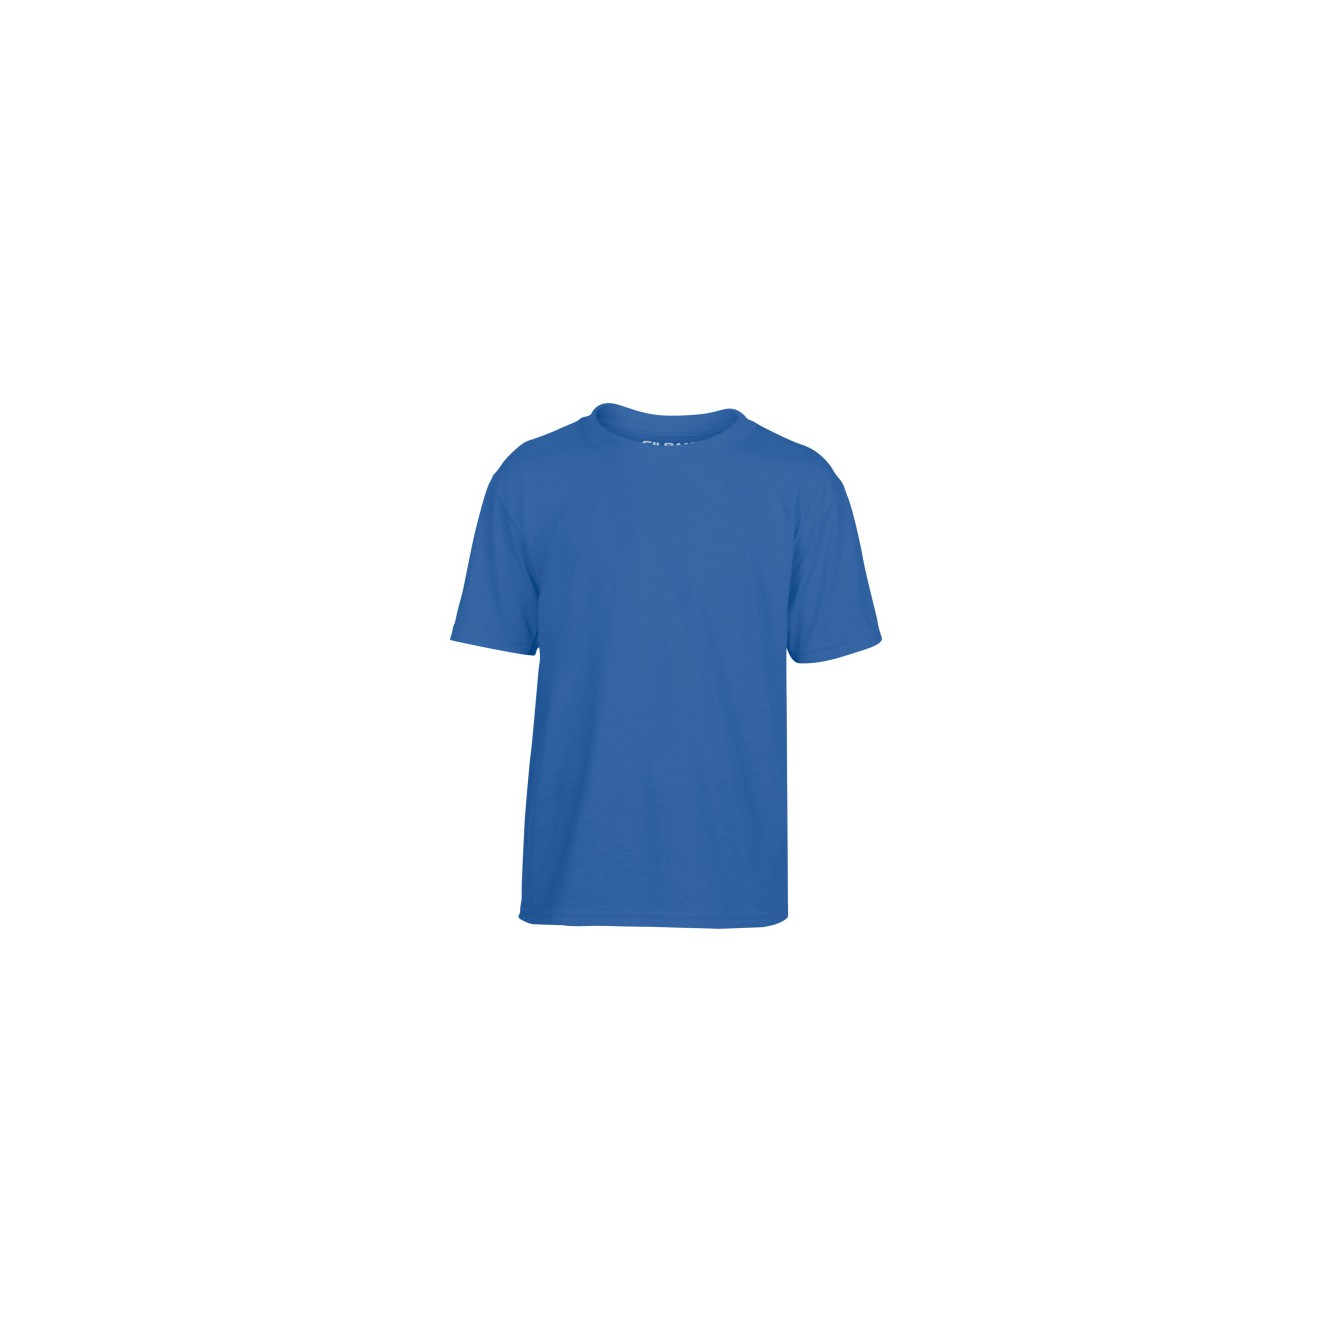 Core Performance t-shirt SS for kids